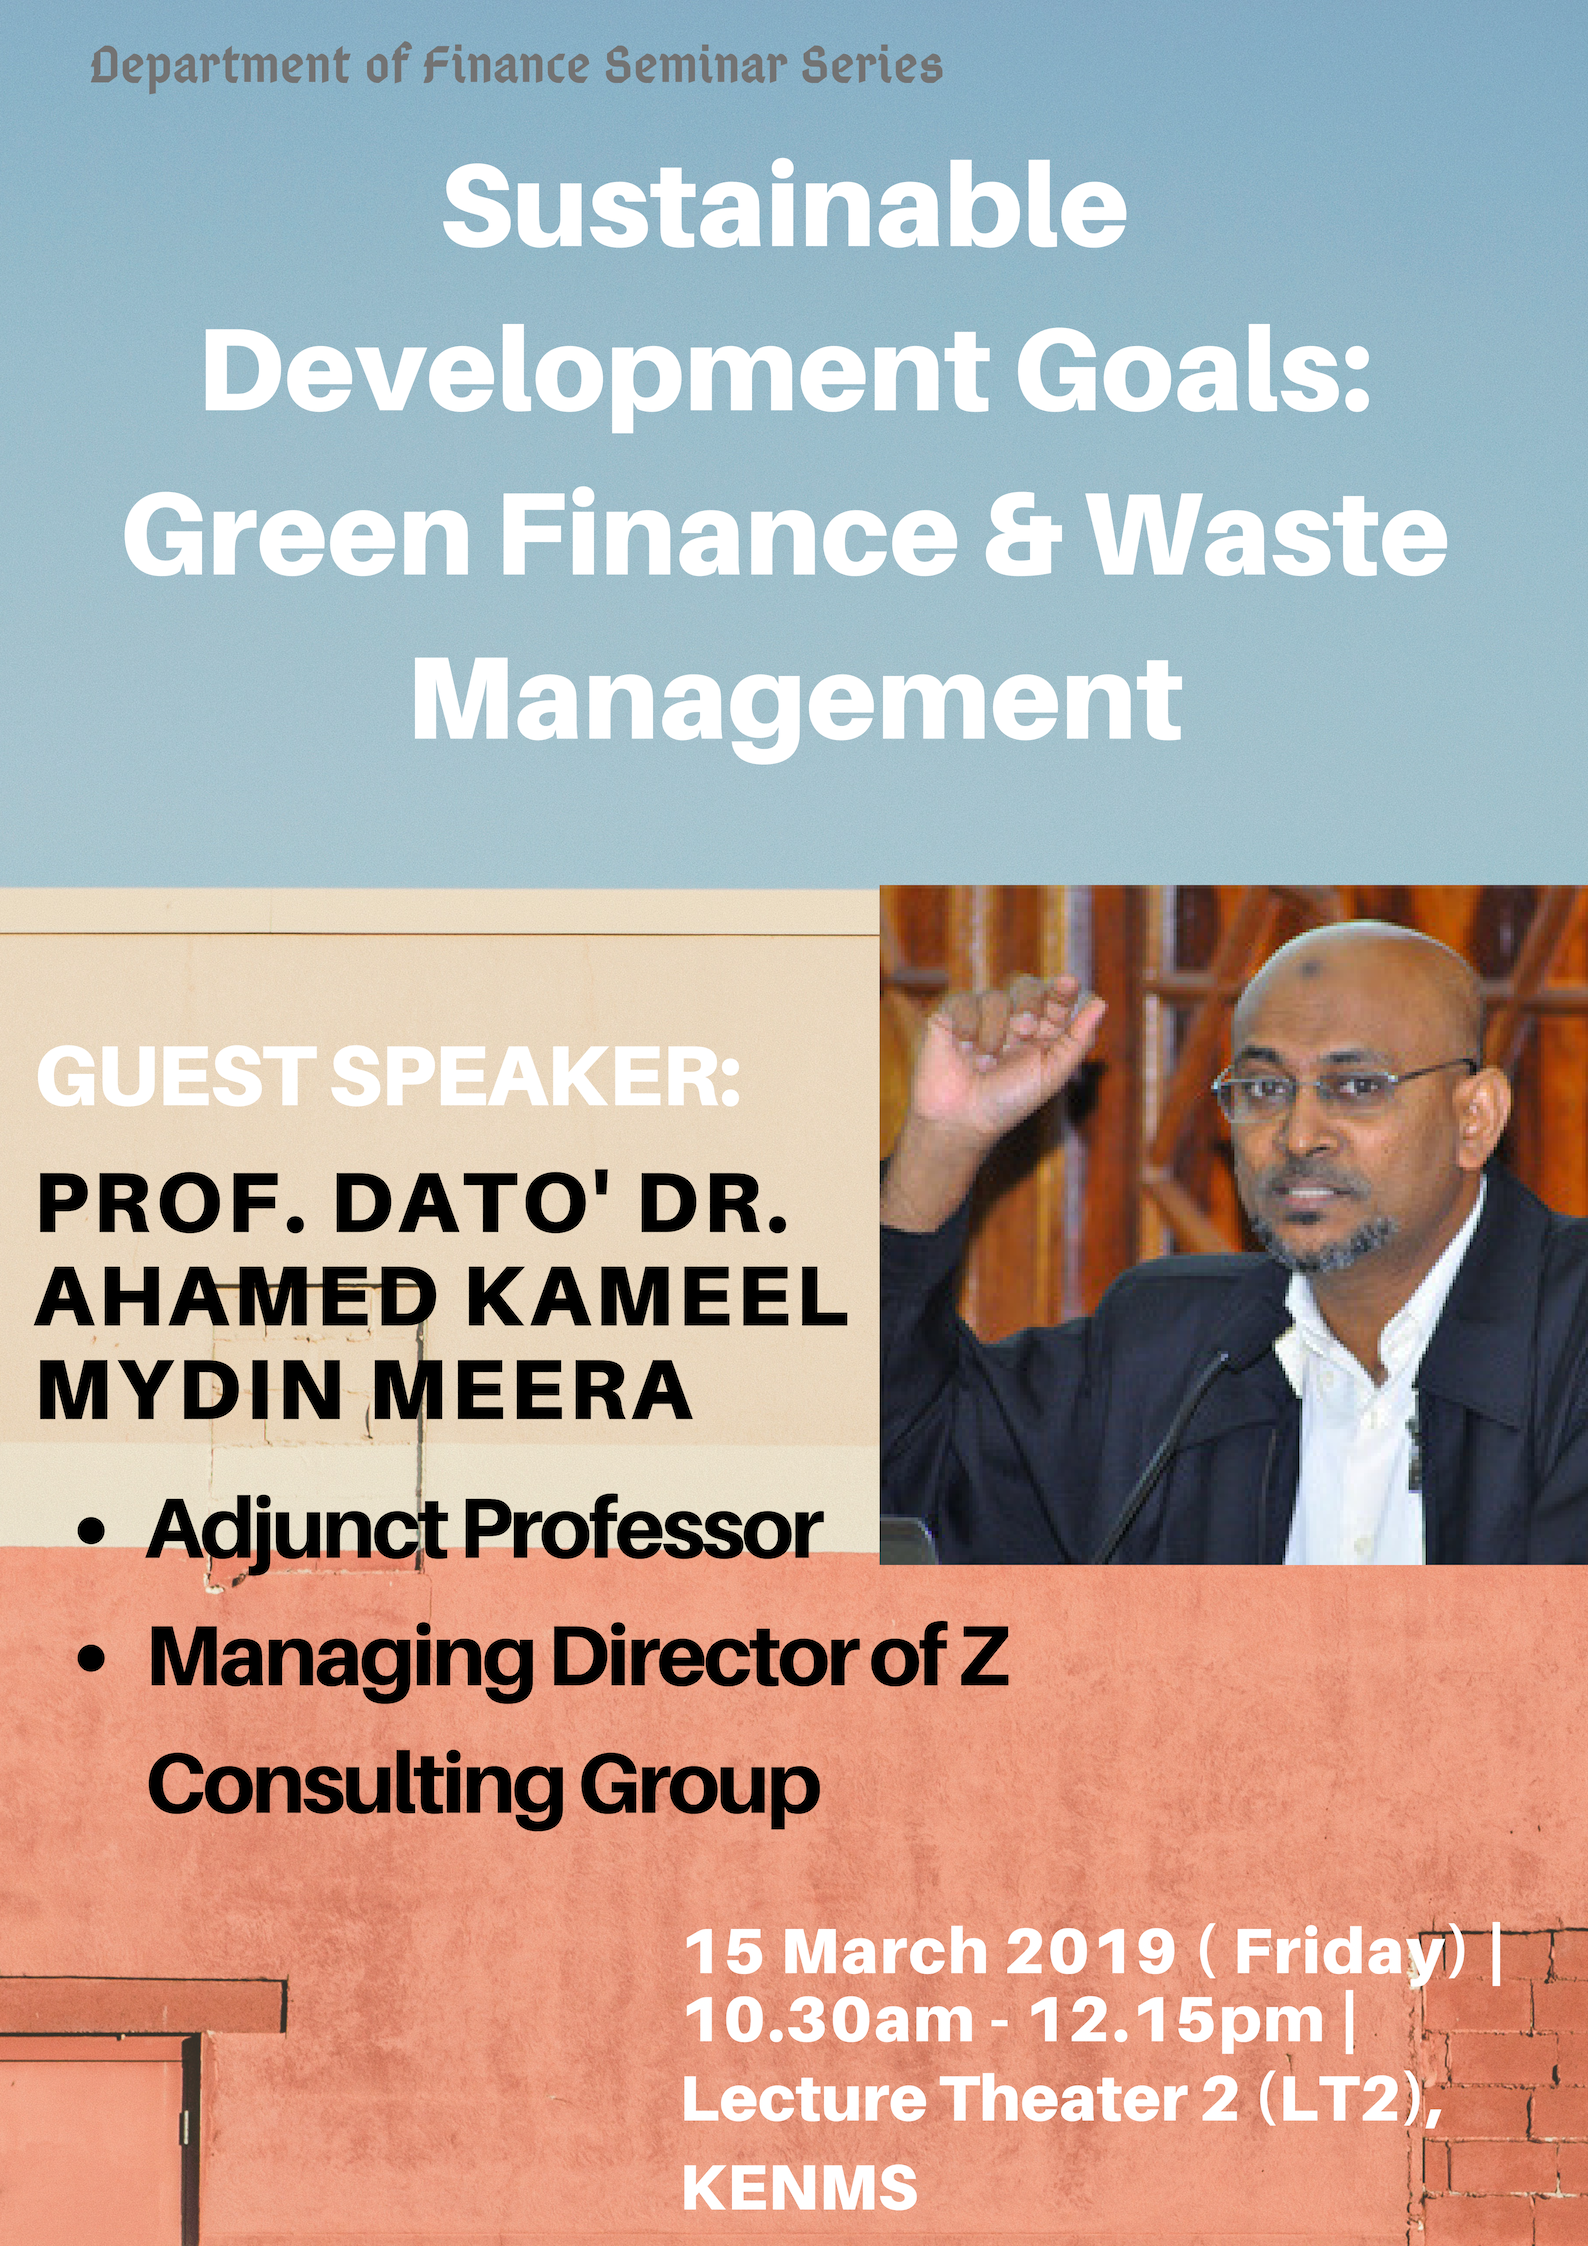 Sustainable Development Goals (SDGs): Green Finance and Waste Management